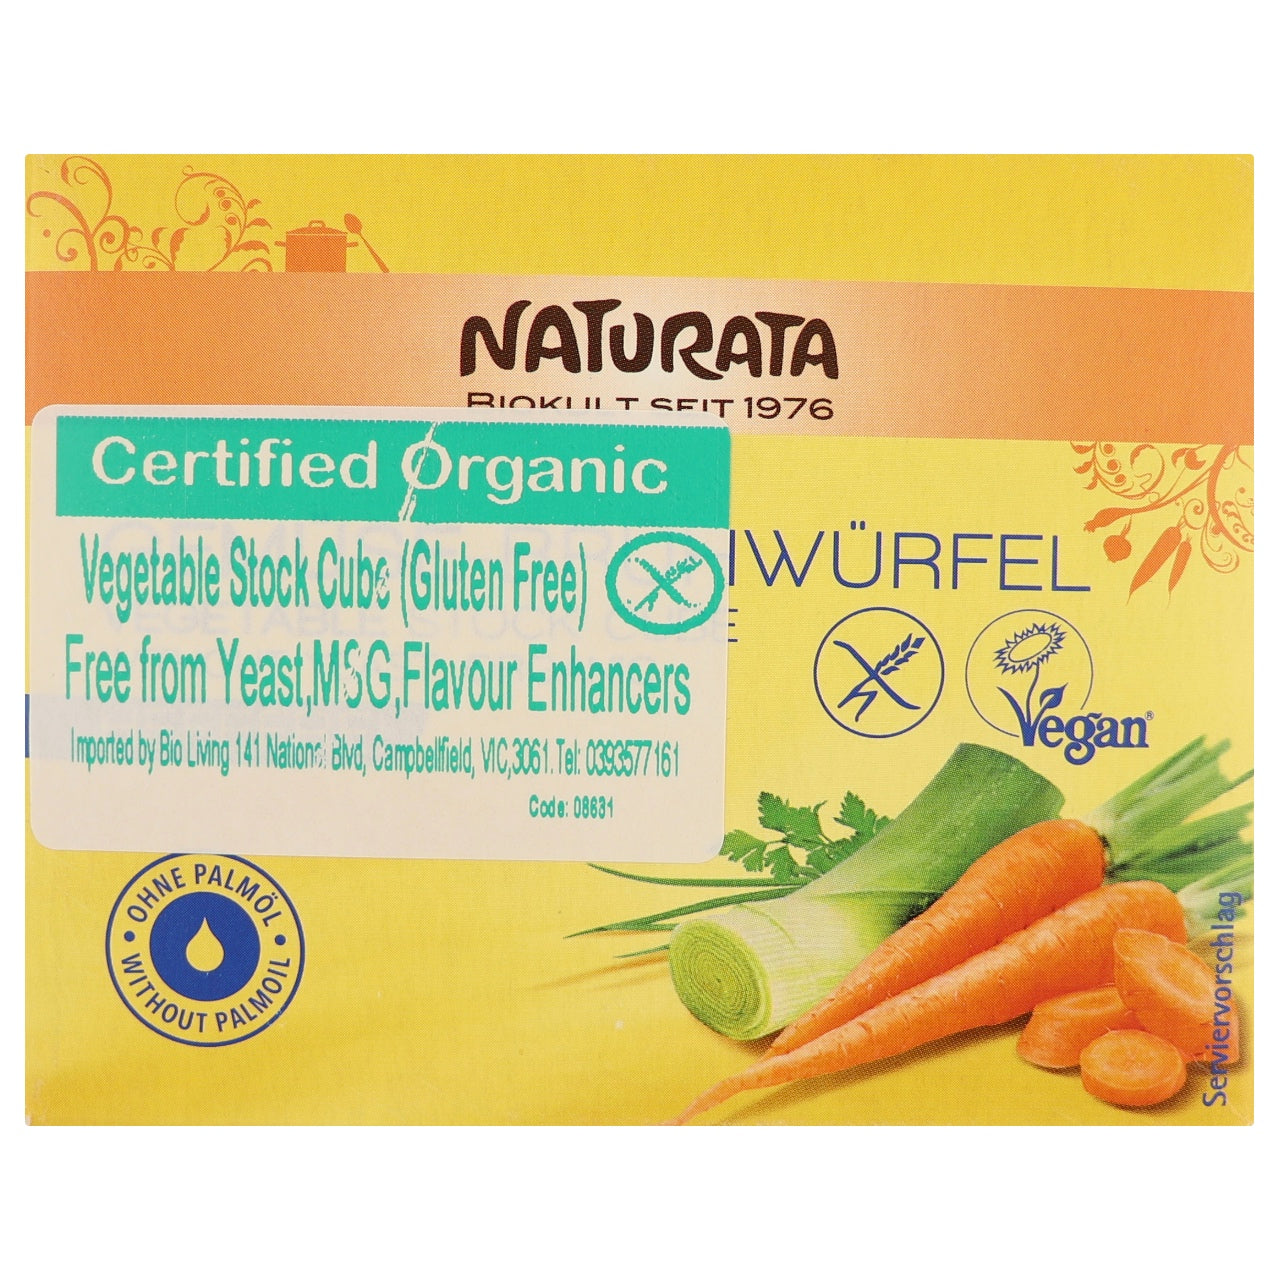 Naturata Yeast Free Vegetable Stock Cubes